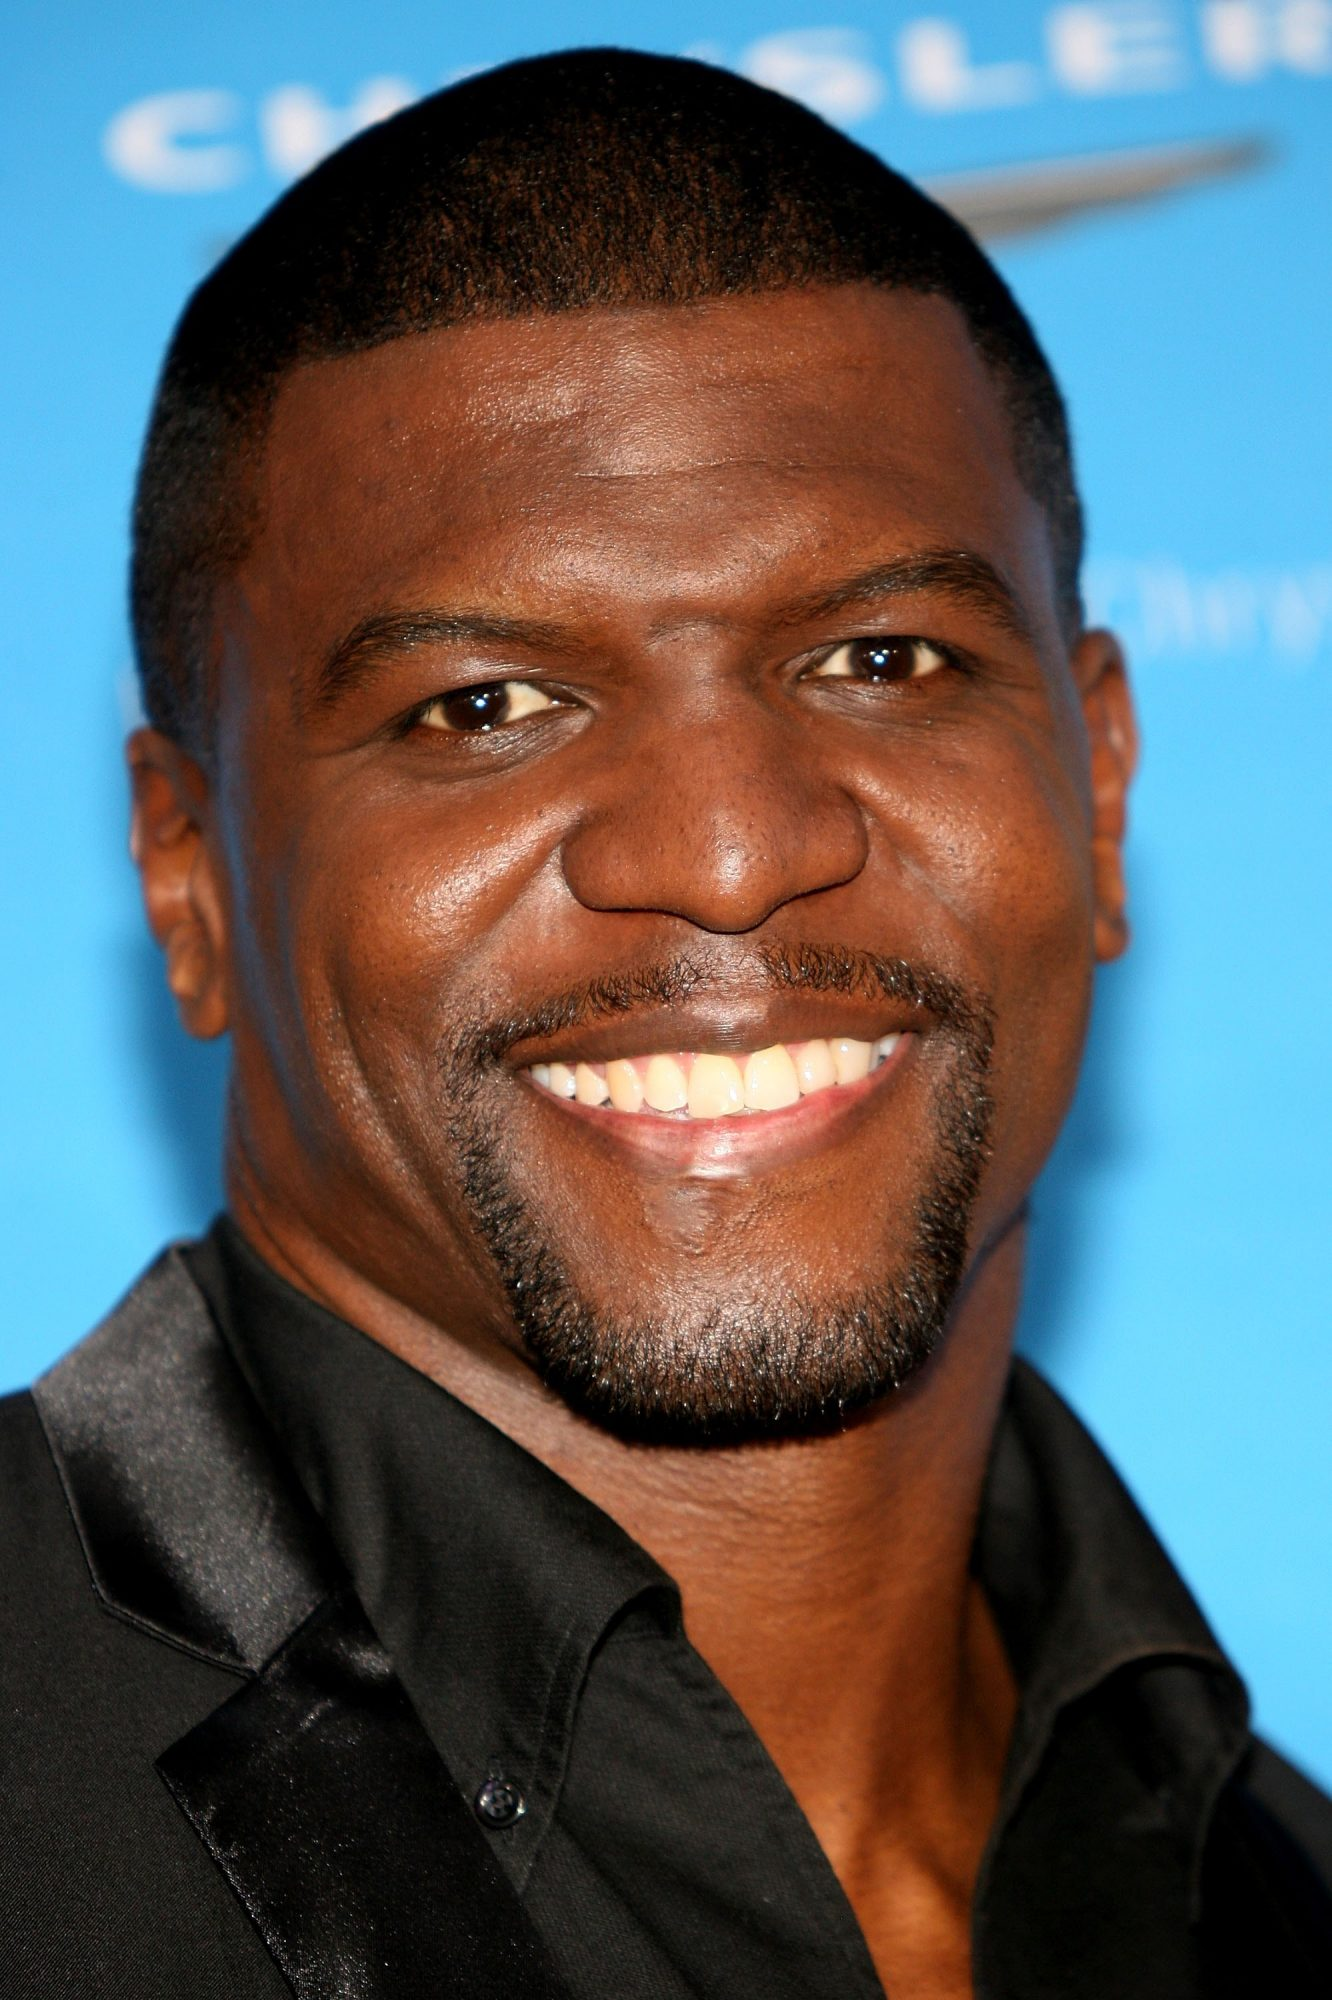 Terry Crews con pelo